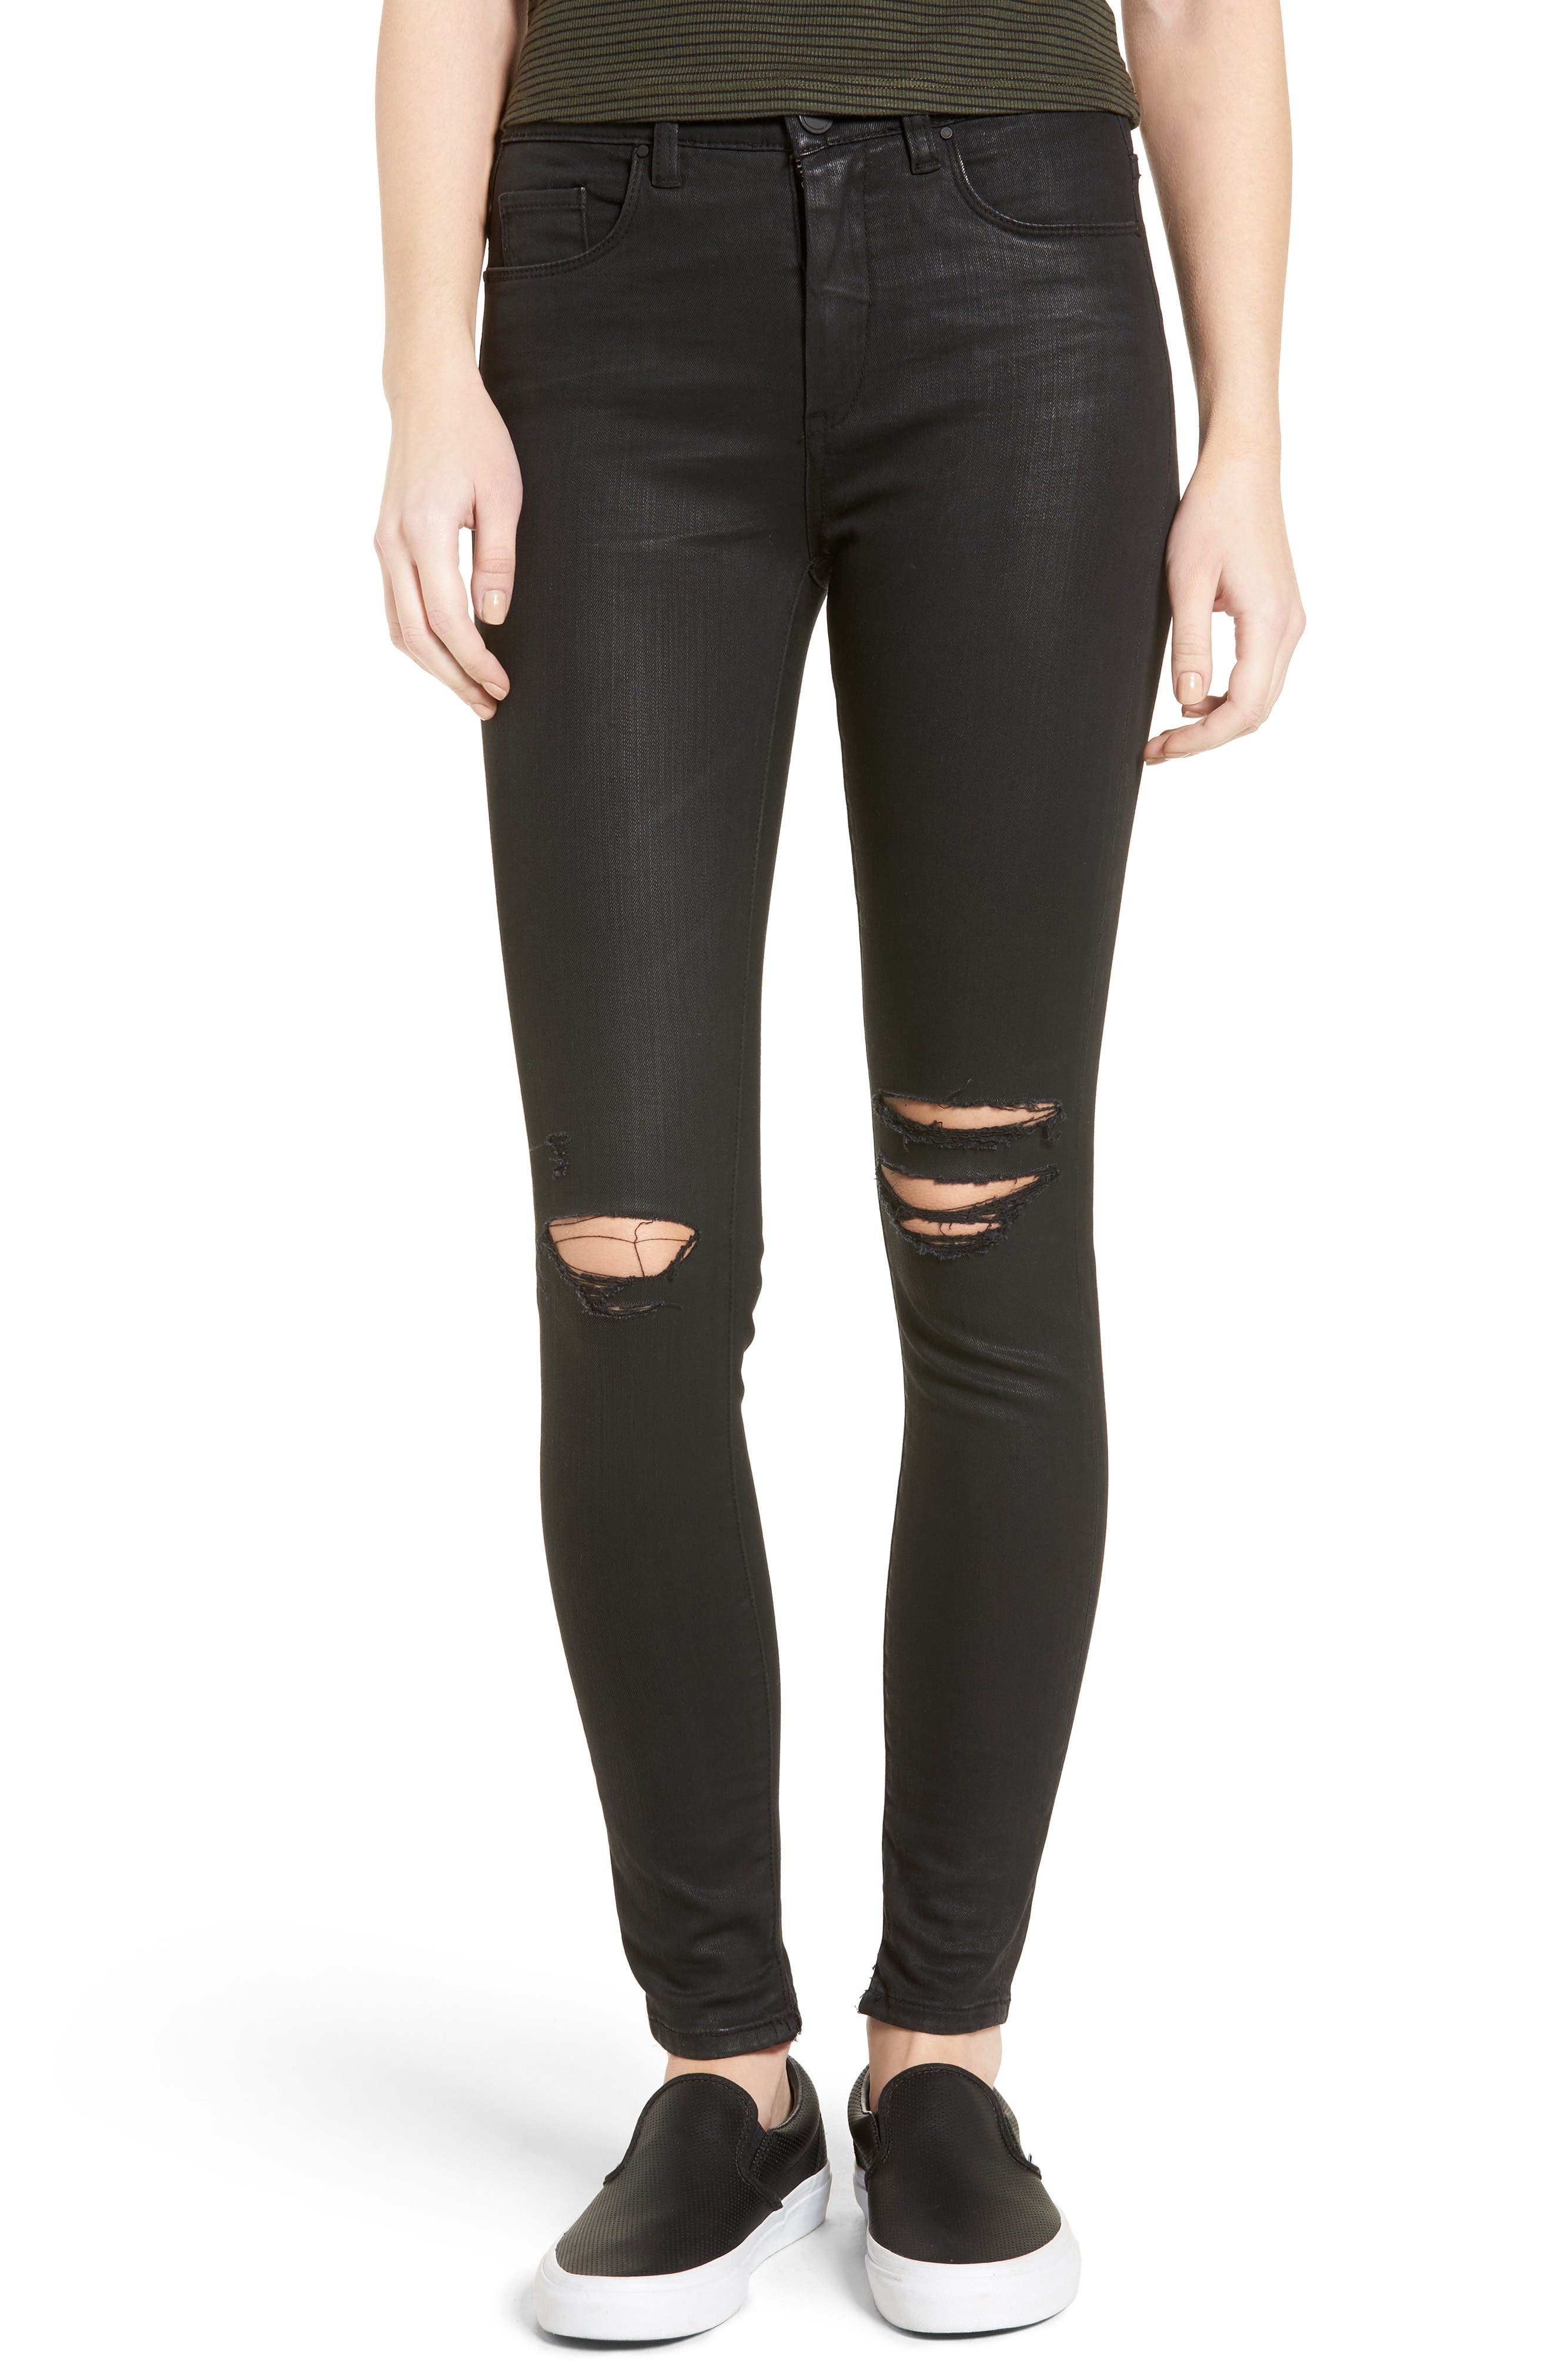 'All Lacquered Up' Coated Skinny Jeans,                         Main,                         color, All Lacquered Up